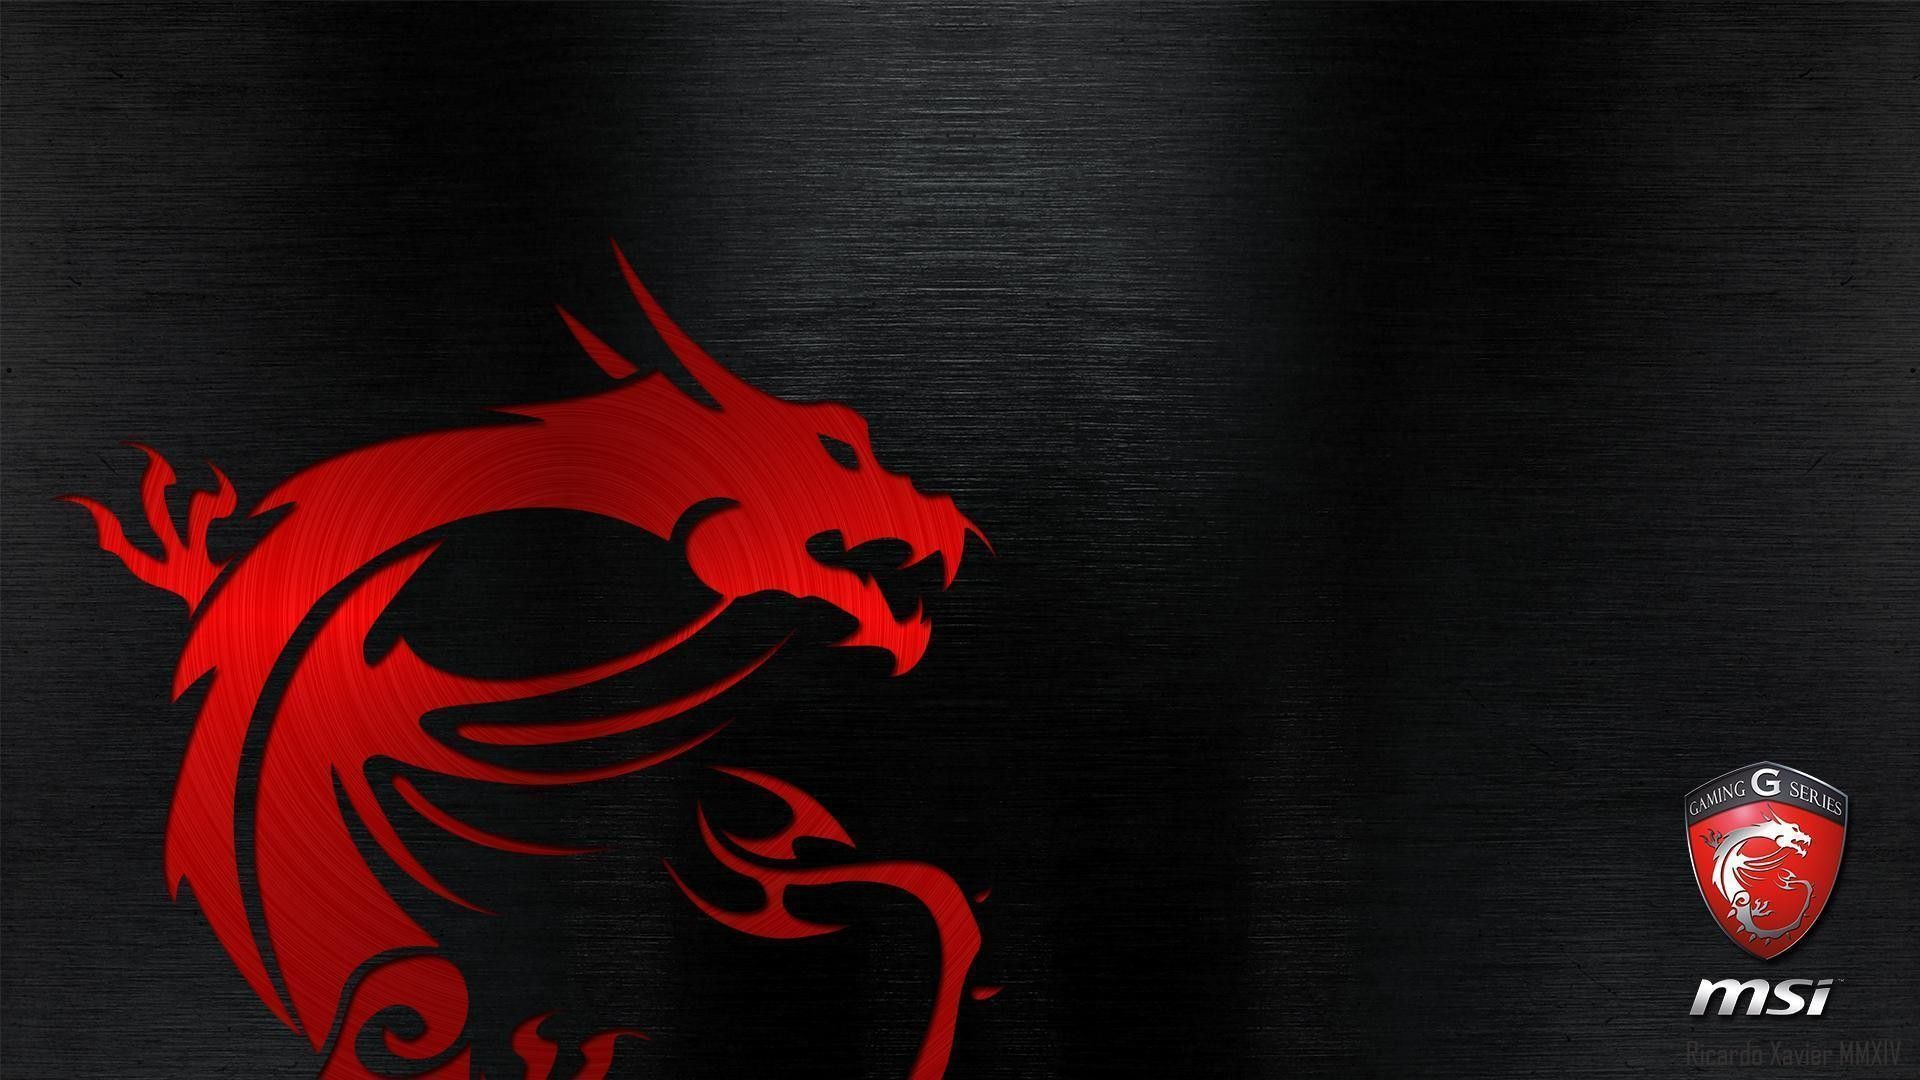 Msi Red Wallpapers Top Free Msi Red Backgrounds Wallpaperaccess